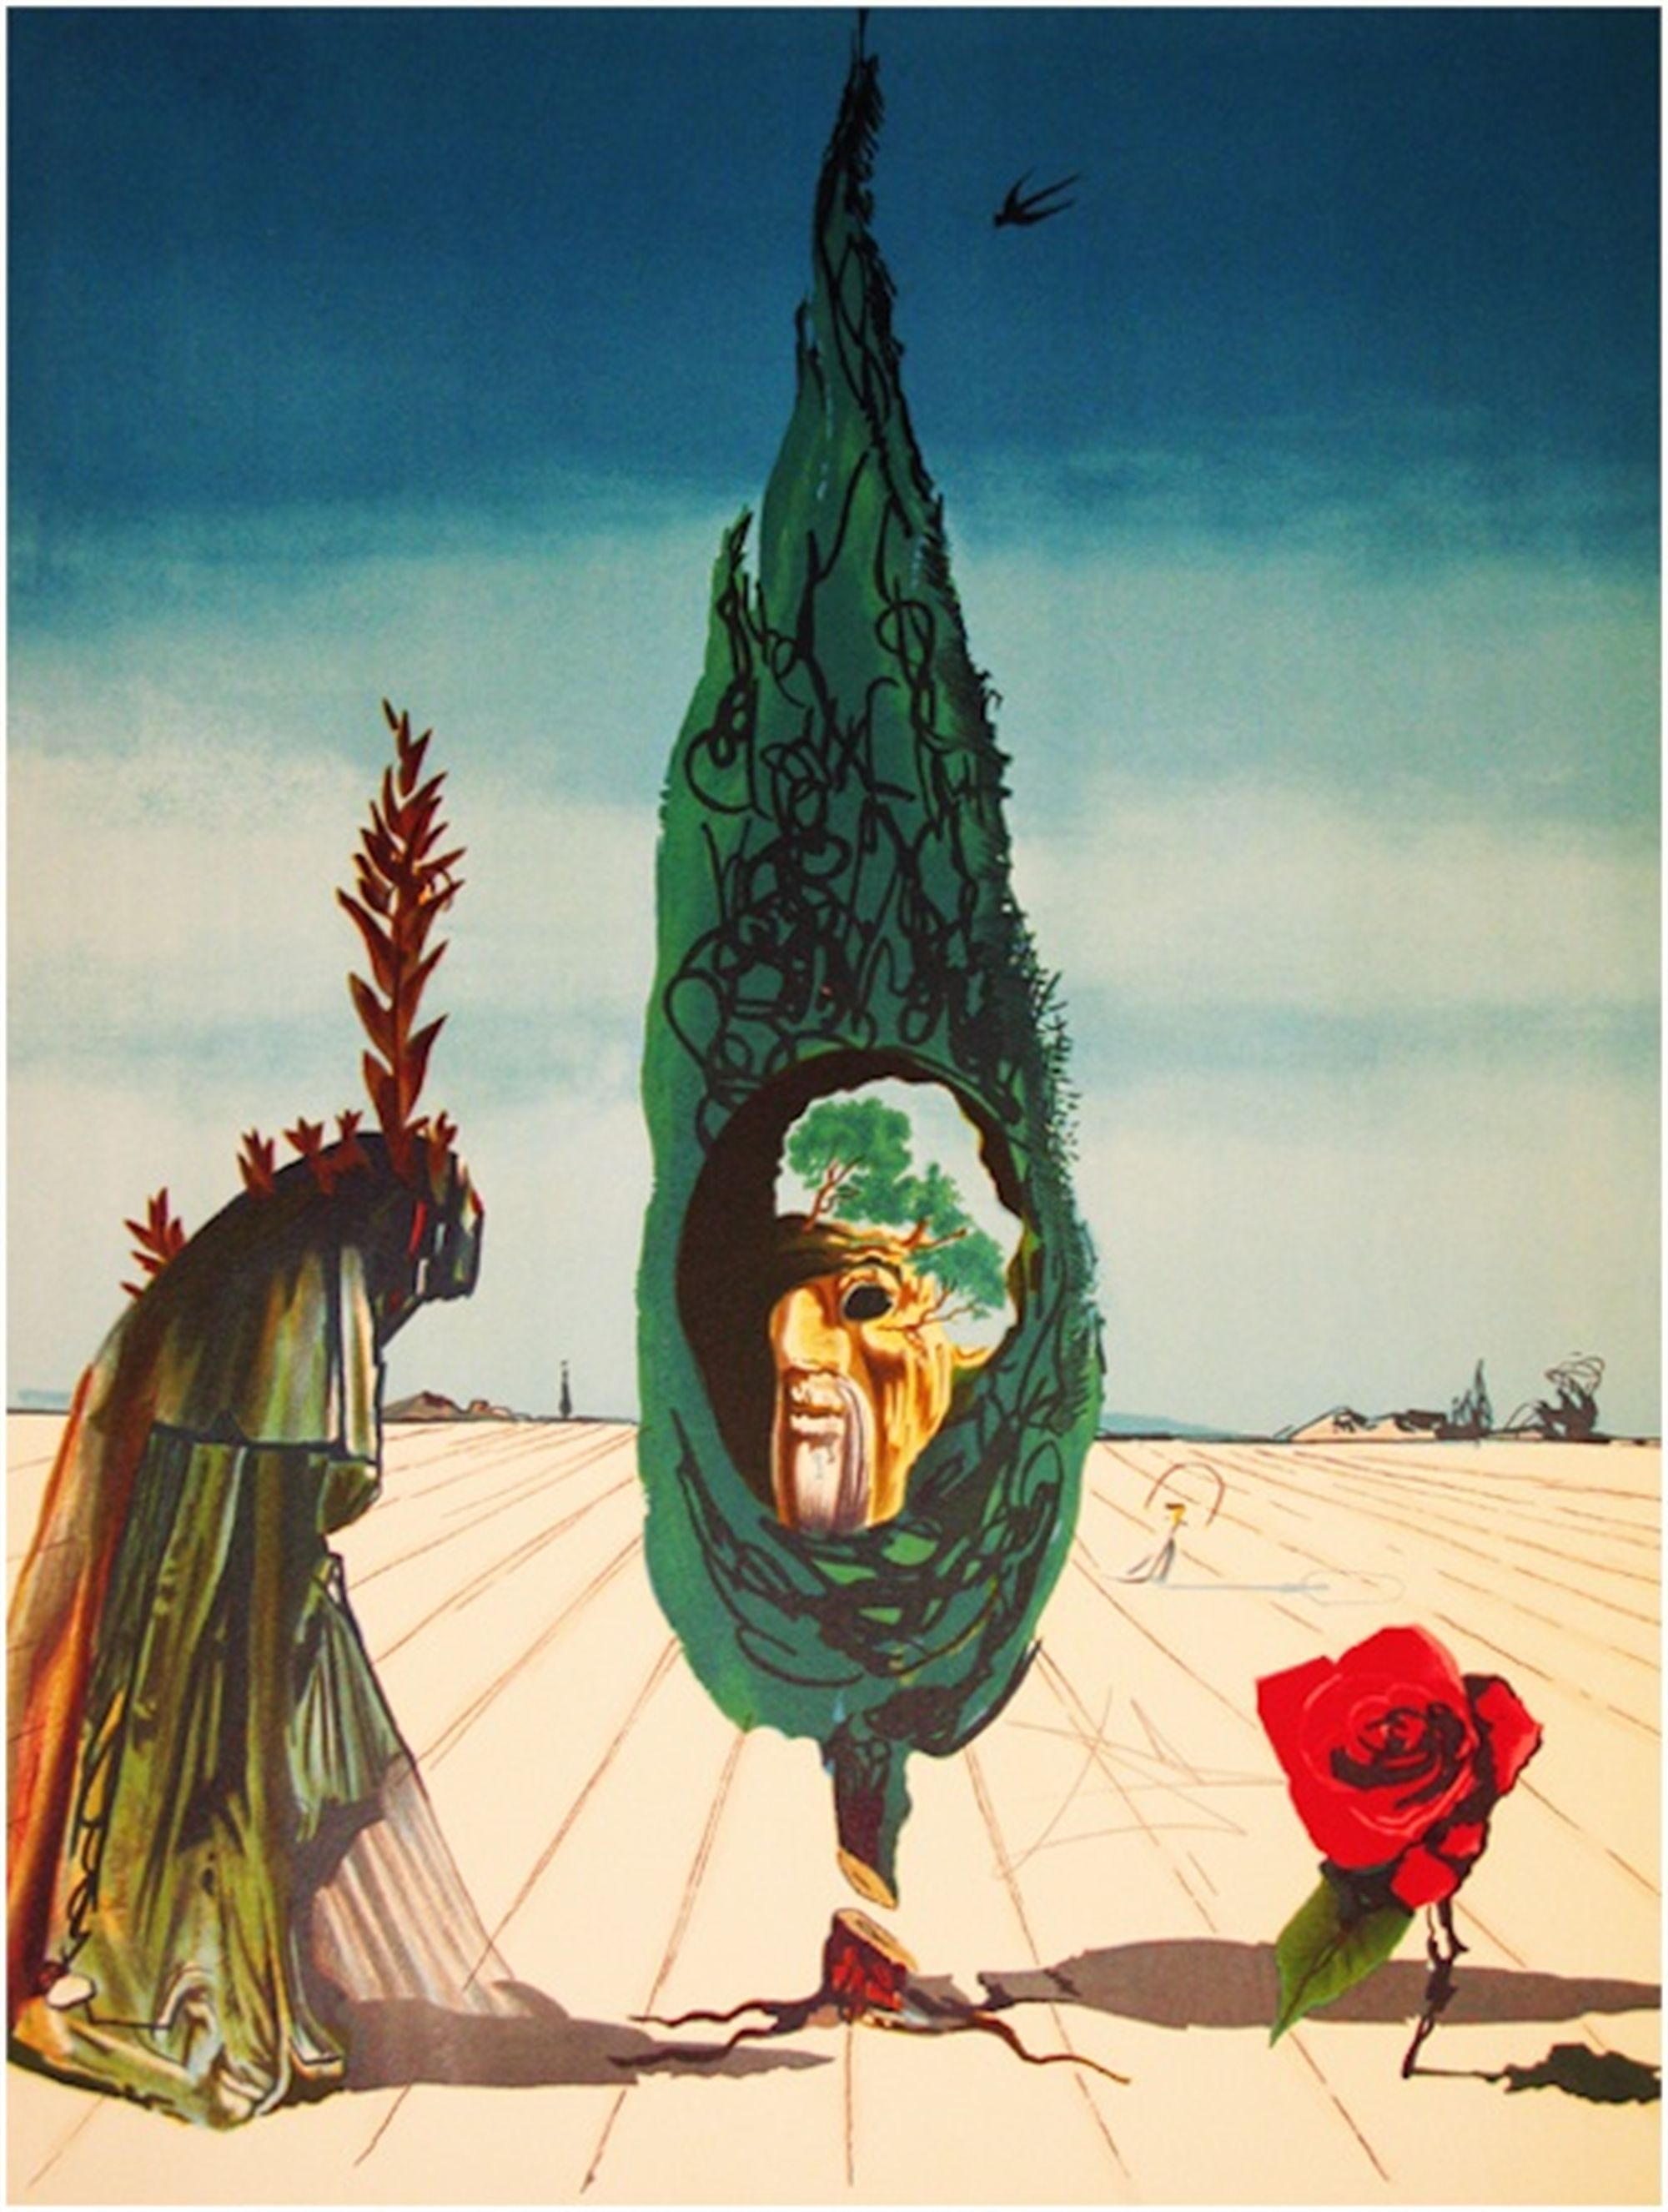 Enigma of the Rose/Death (from Visions Surrealiste Suite of 4) by Salvador Dali